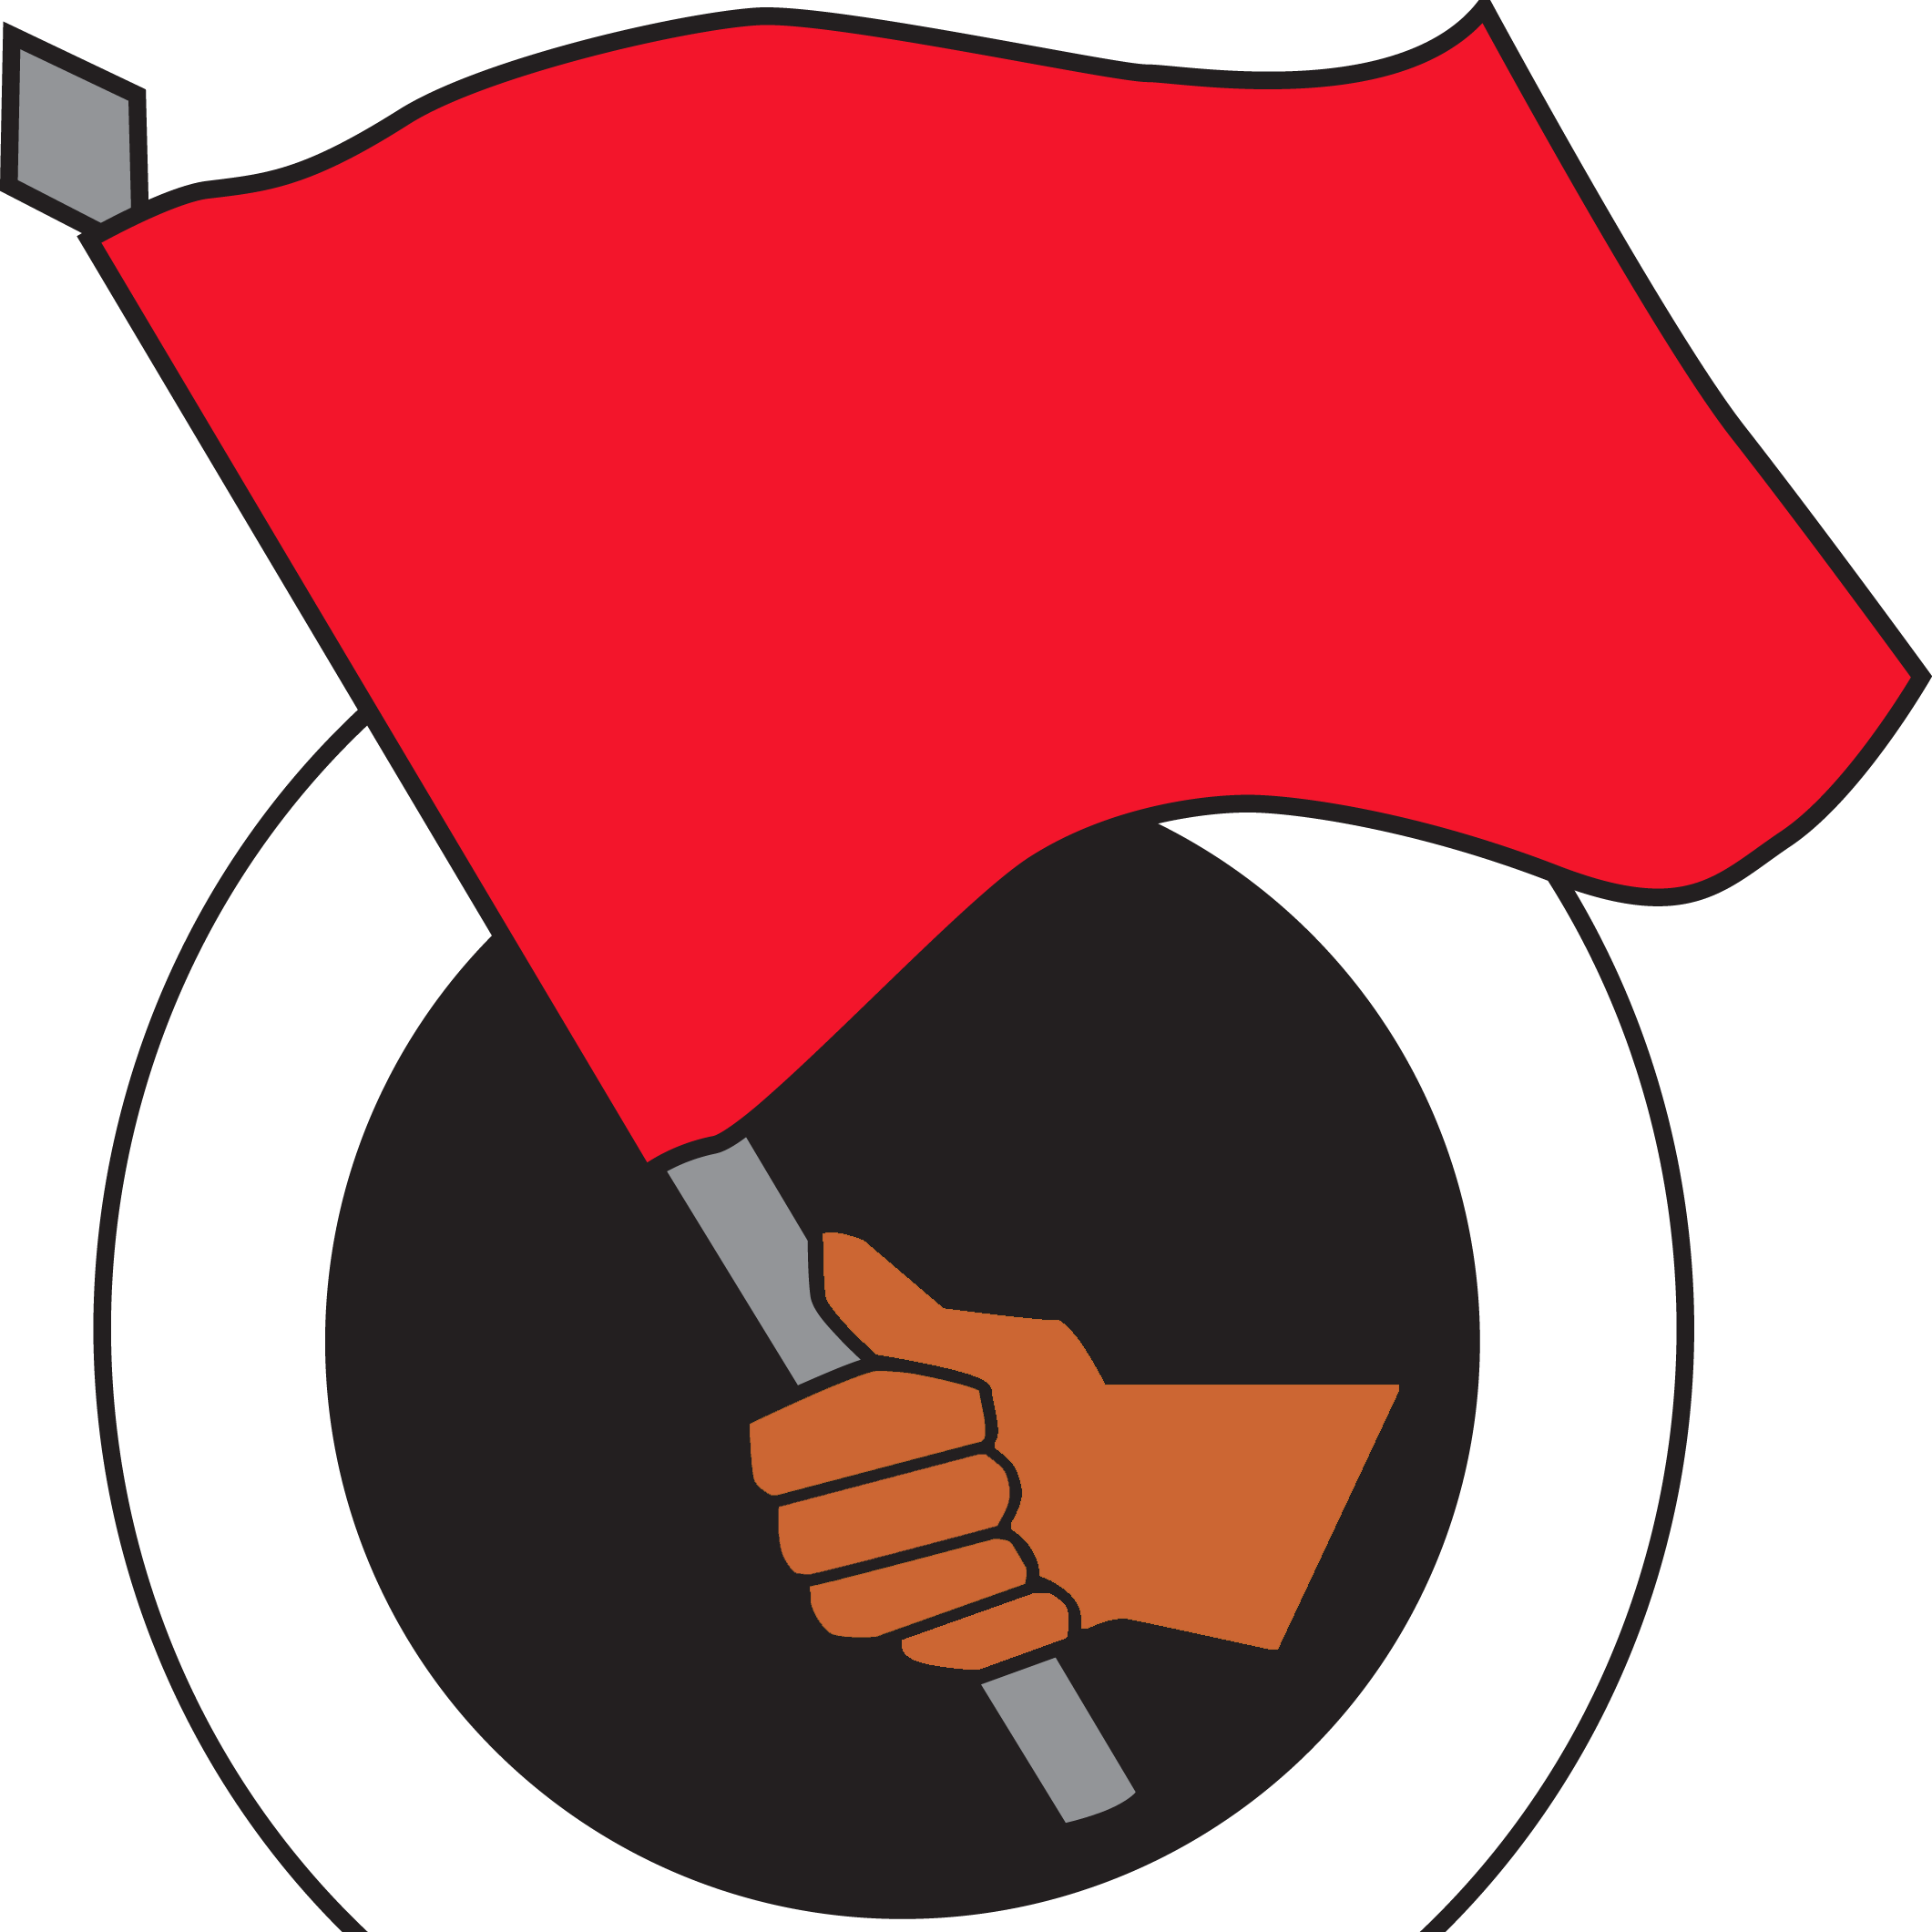 Ycl canada yclcanada twitter. July clipart person canadian